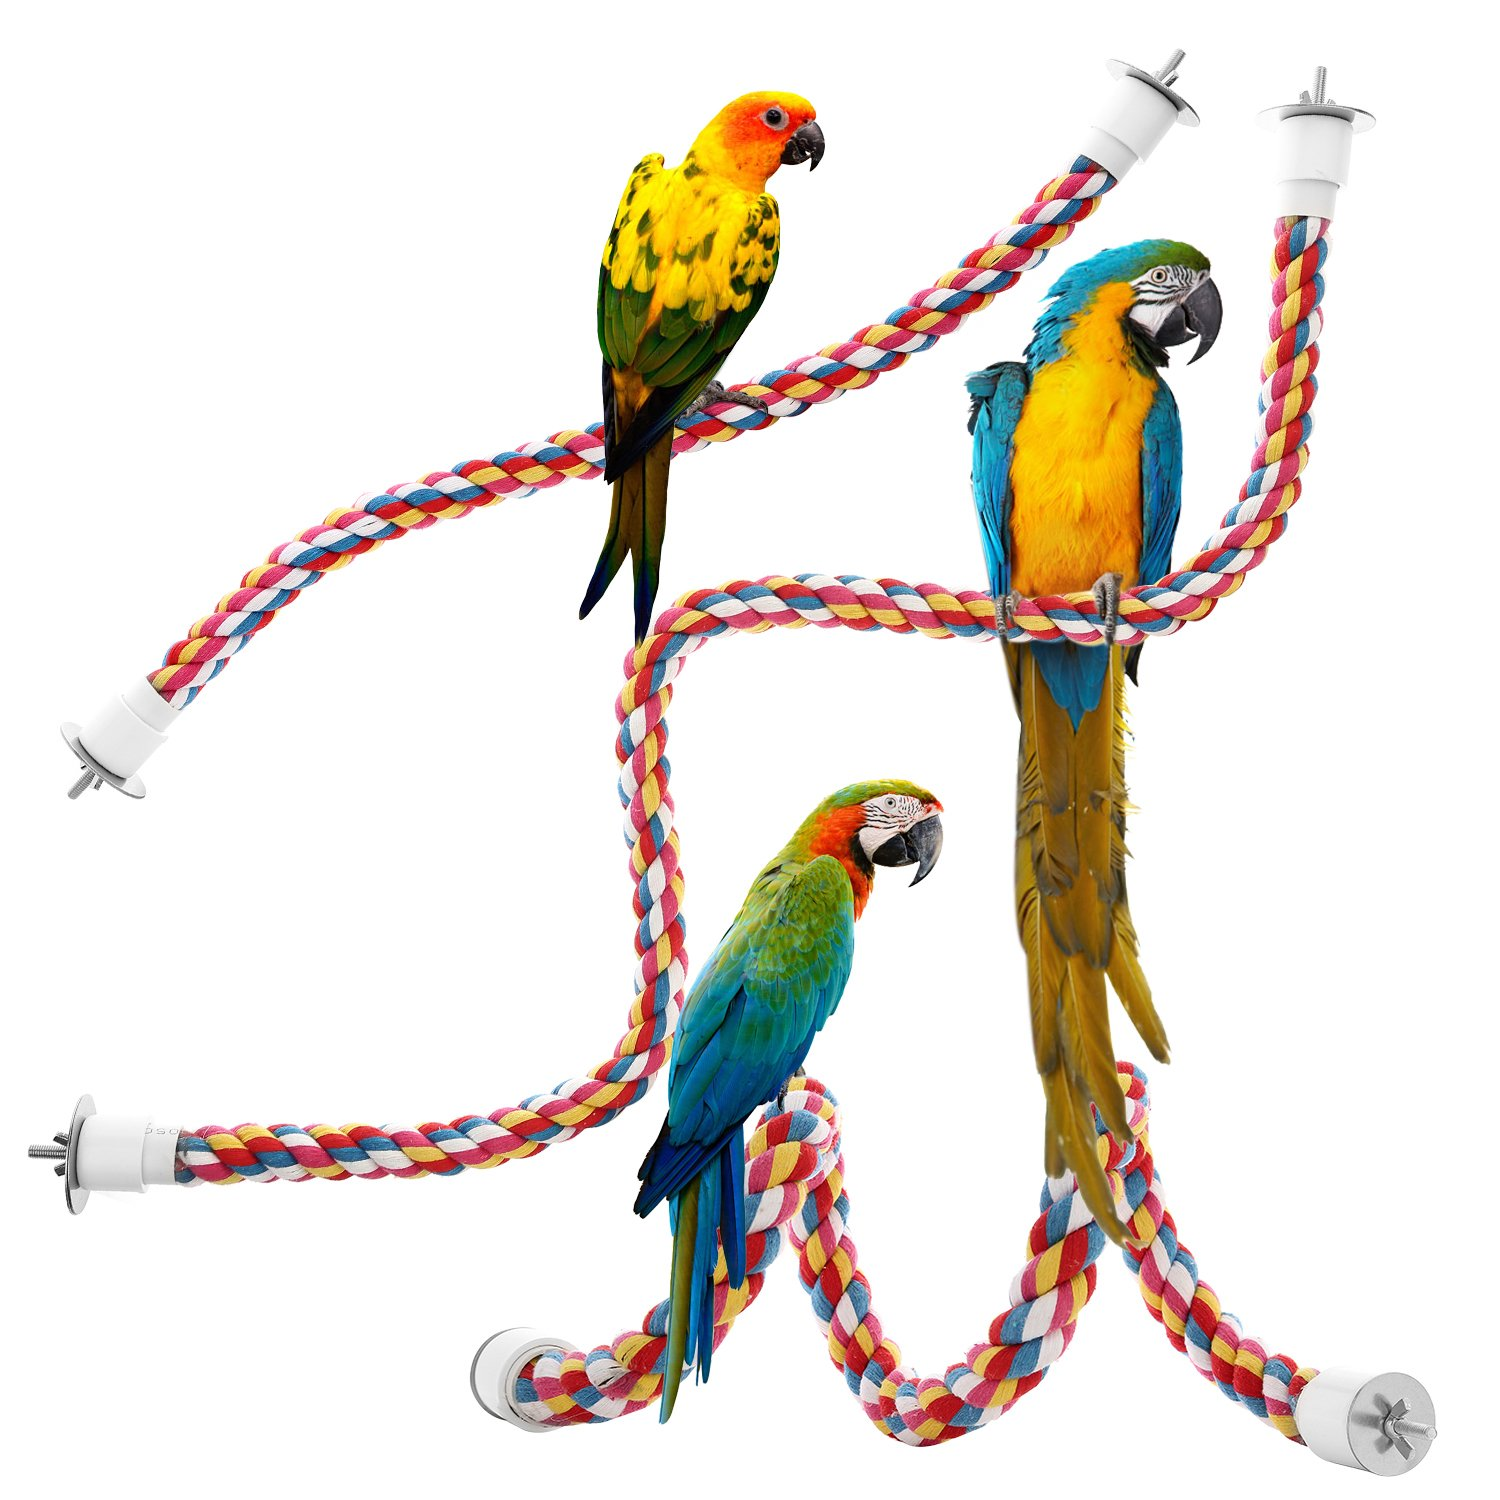 Jusney Bird Rope Perches,Parrot Toys 41 inches Rope Bungee Bird Toy (41 inches)[1 Pack] by Jusney